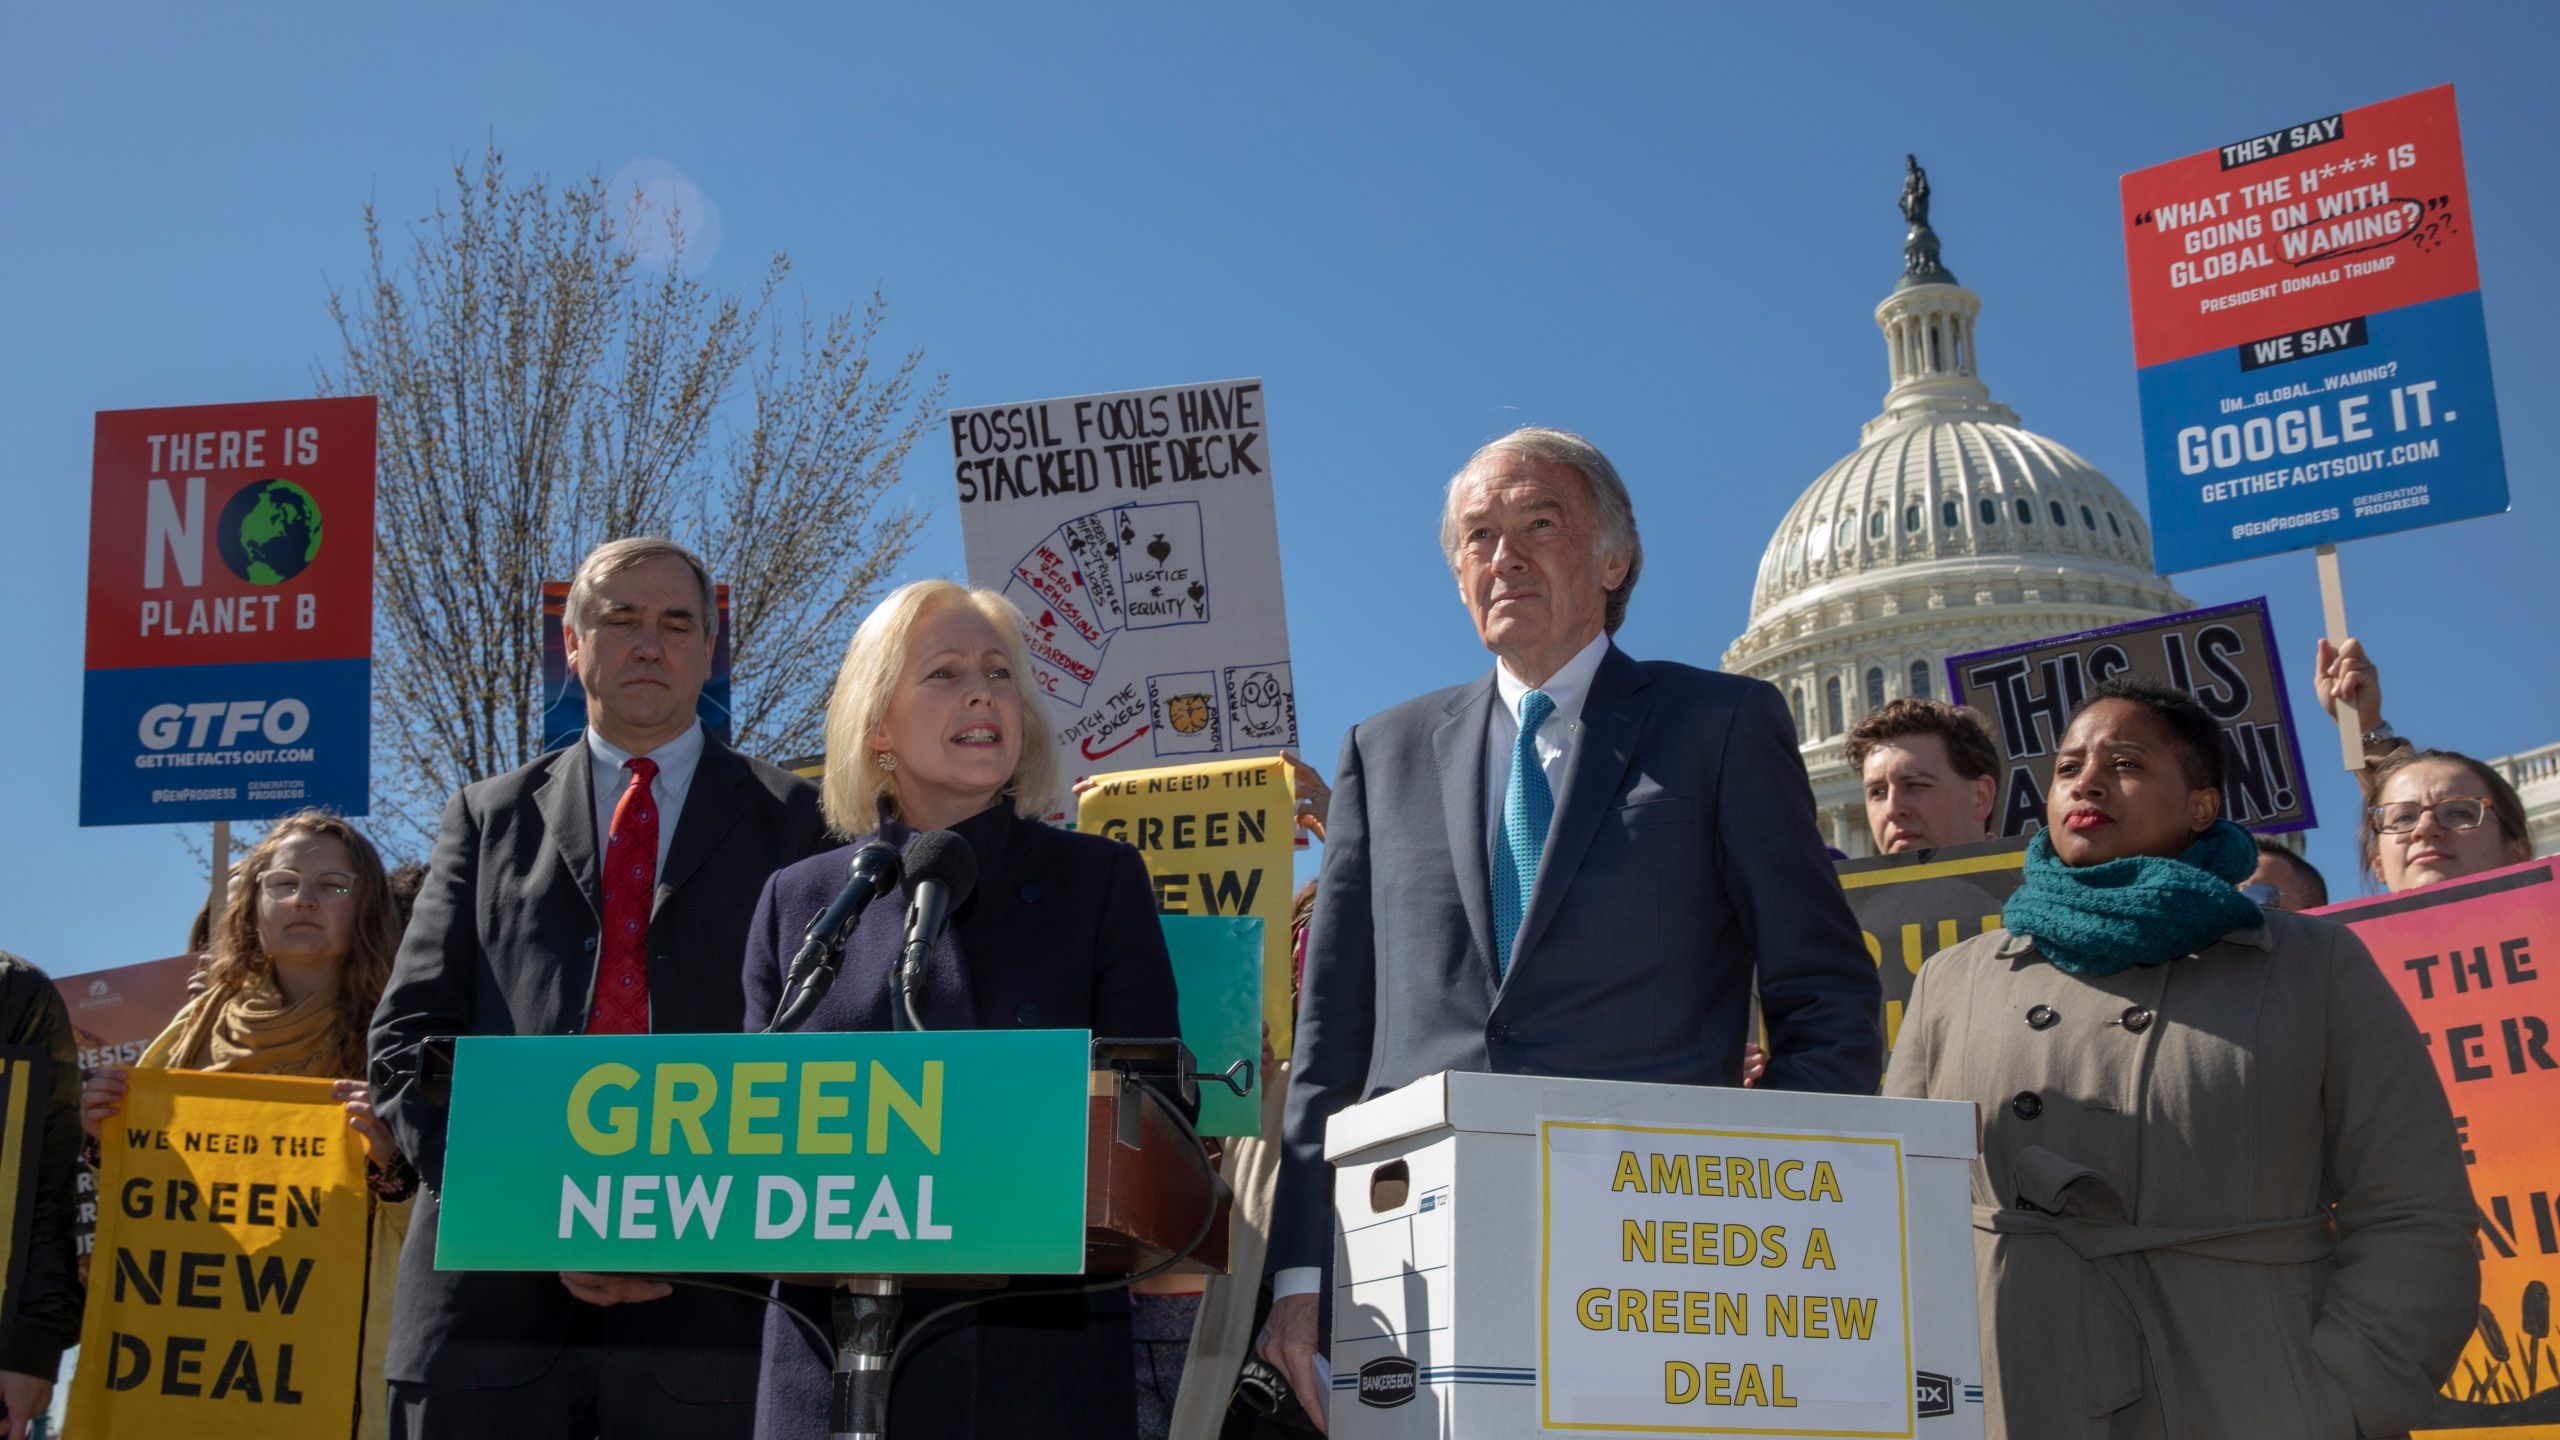 Senator Kirsten Gillibrand (D-NY) talks about the Green New Deal on Capitol Hill on March 26, 2019 (Credit: Tasos Katopodis/Getty Images)